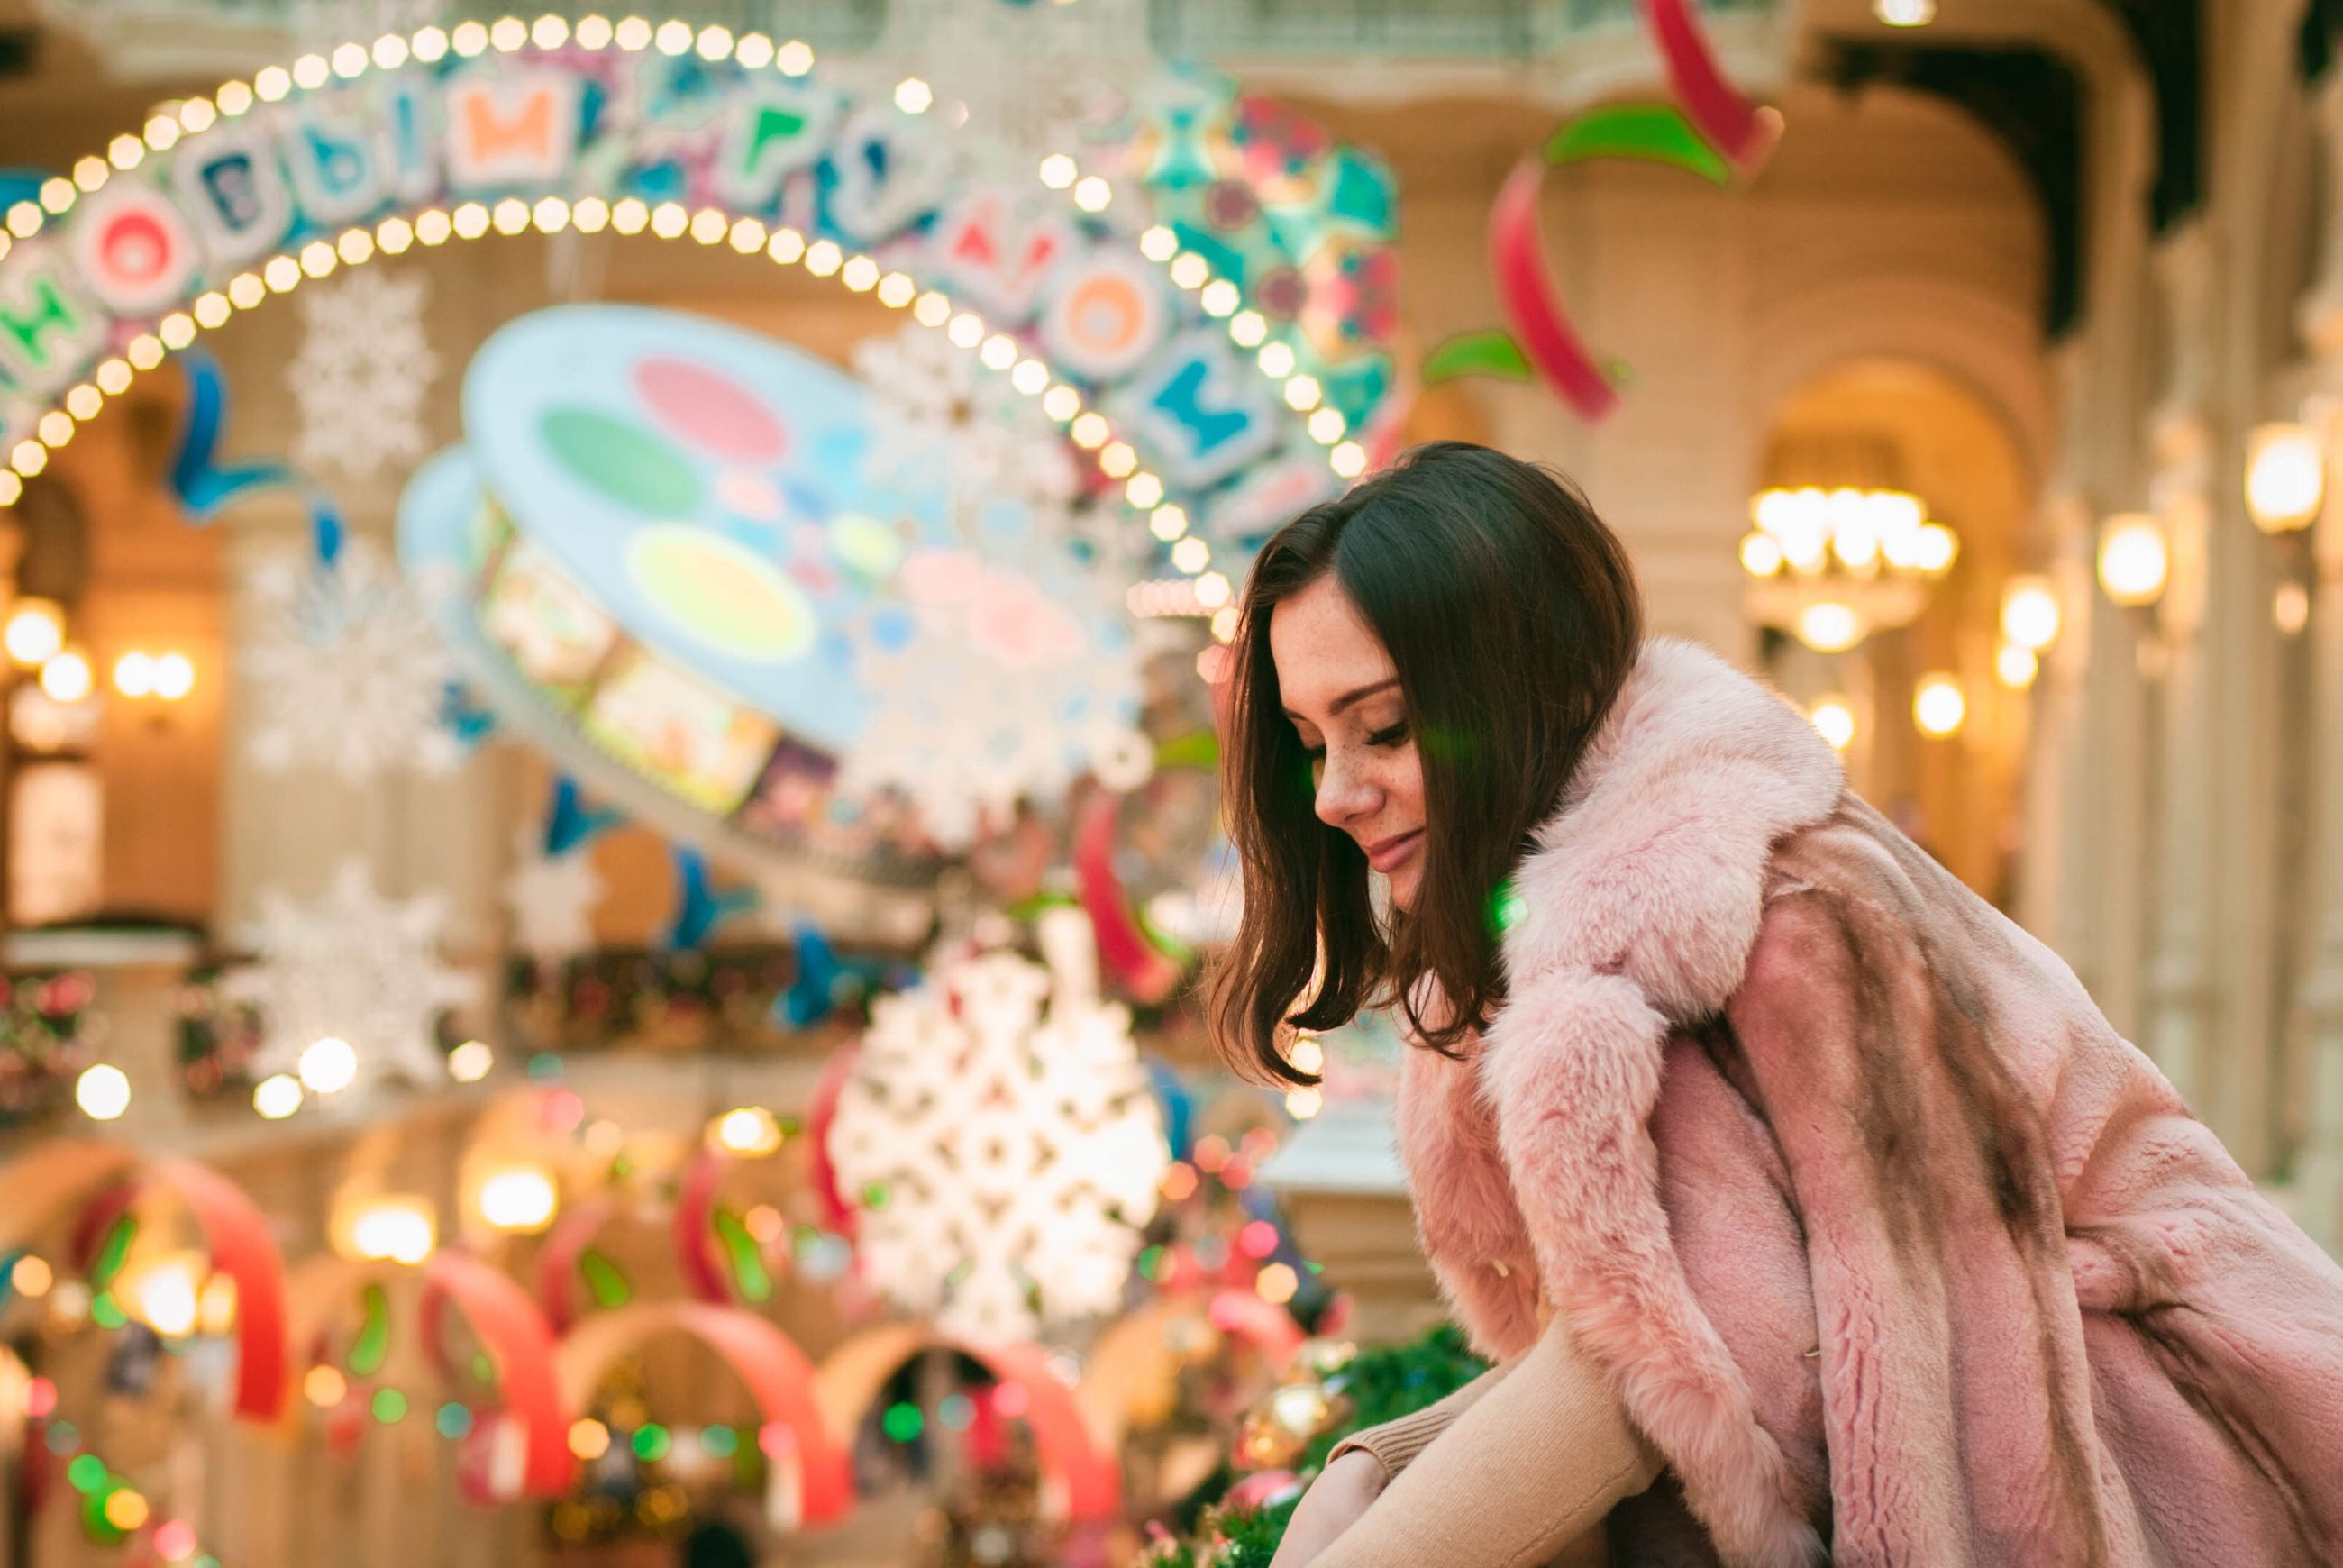 leisure activity, women, illuminated, focus on foreground, young adult, one person, amusement park, real people, adult, emotion, happiness, amusement park ride, lifestyles, young women, smiling, enjoyment, portrait, clothing, side view, hairstyle, warm clothing